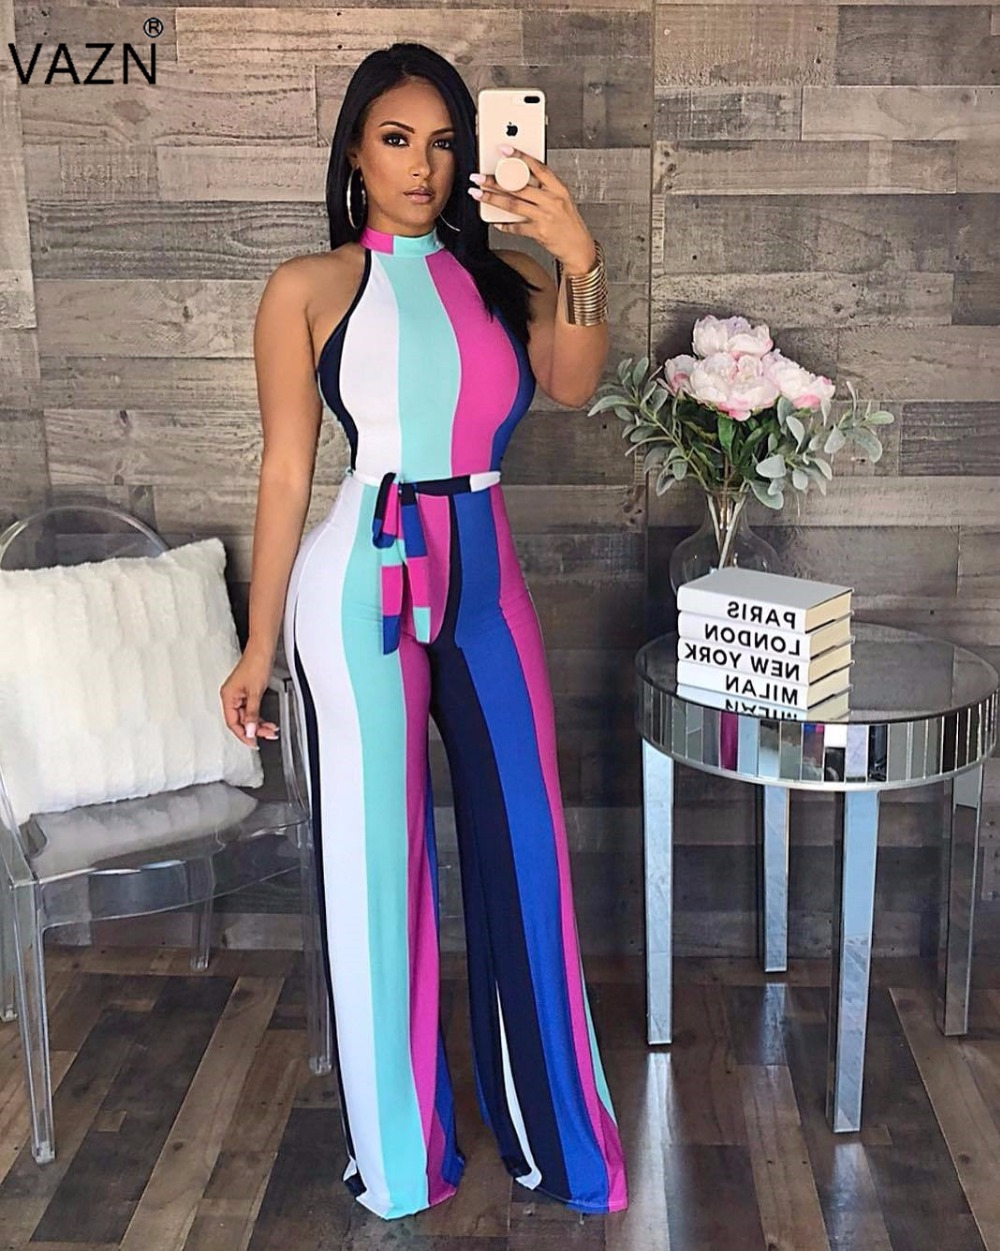 VAZN 2018 hot summer striped halter jumpsuits women sleeveless regular jumpsuits ladies hollow out full length jumpsuits J1508